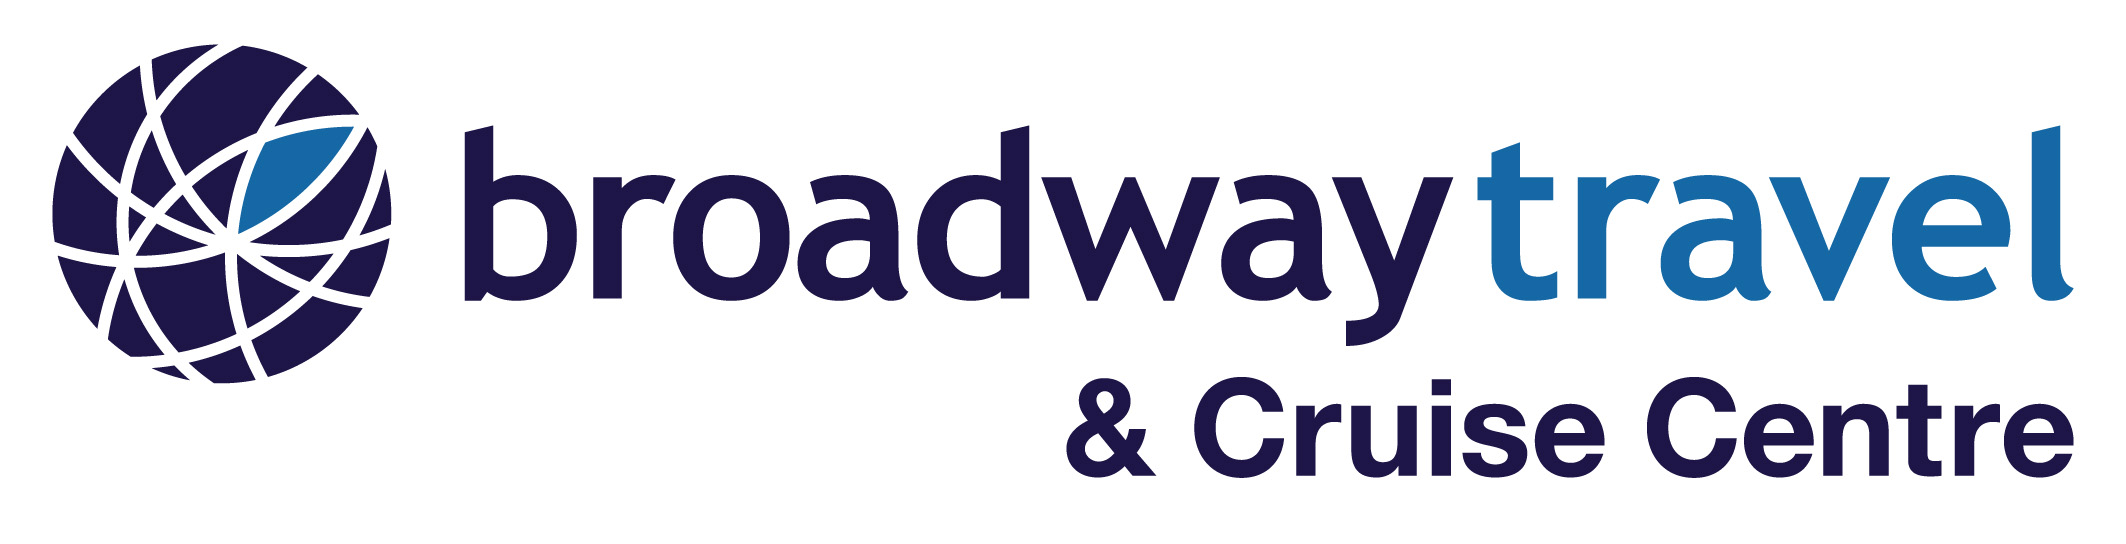 Broadway Travel & Cruise Centre Logo